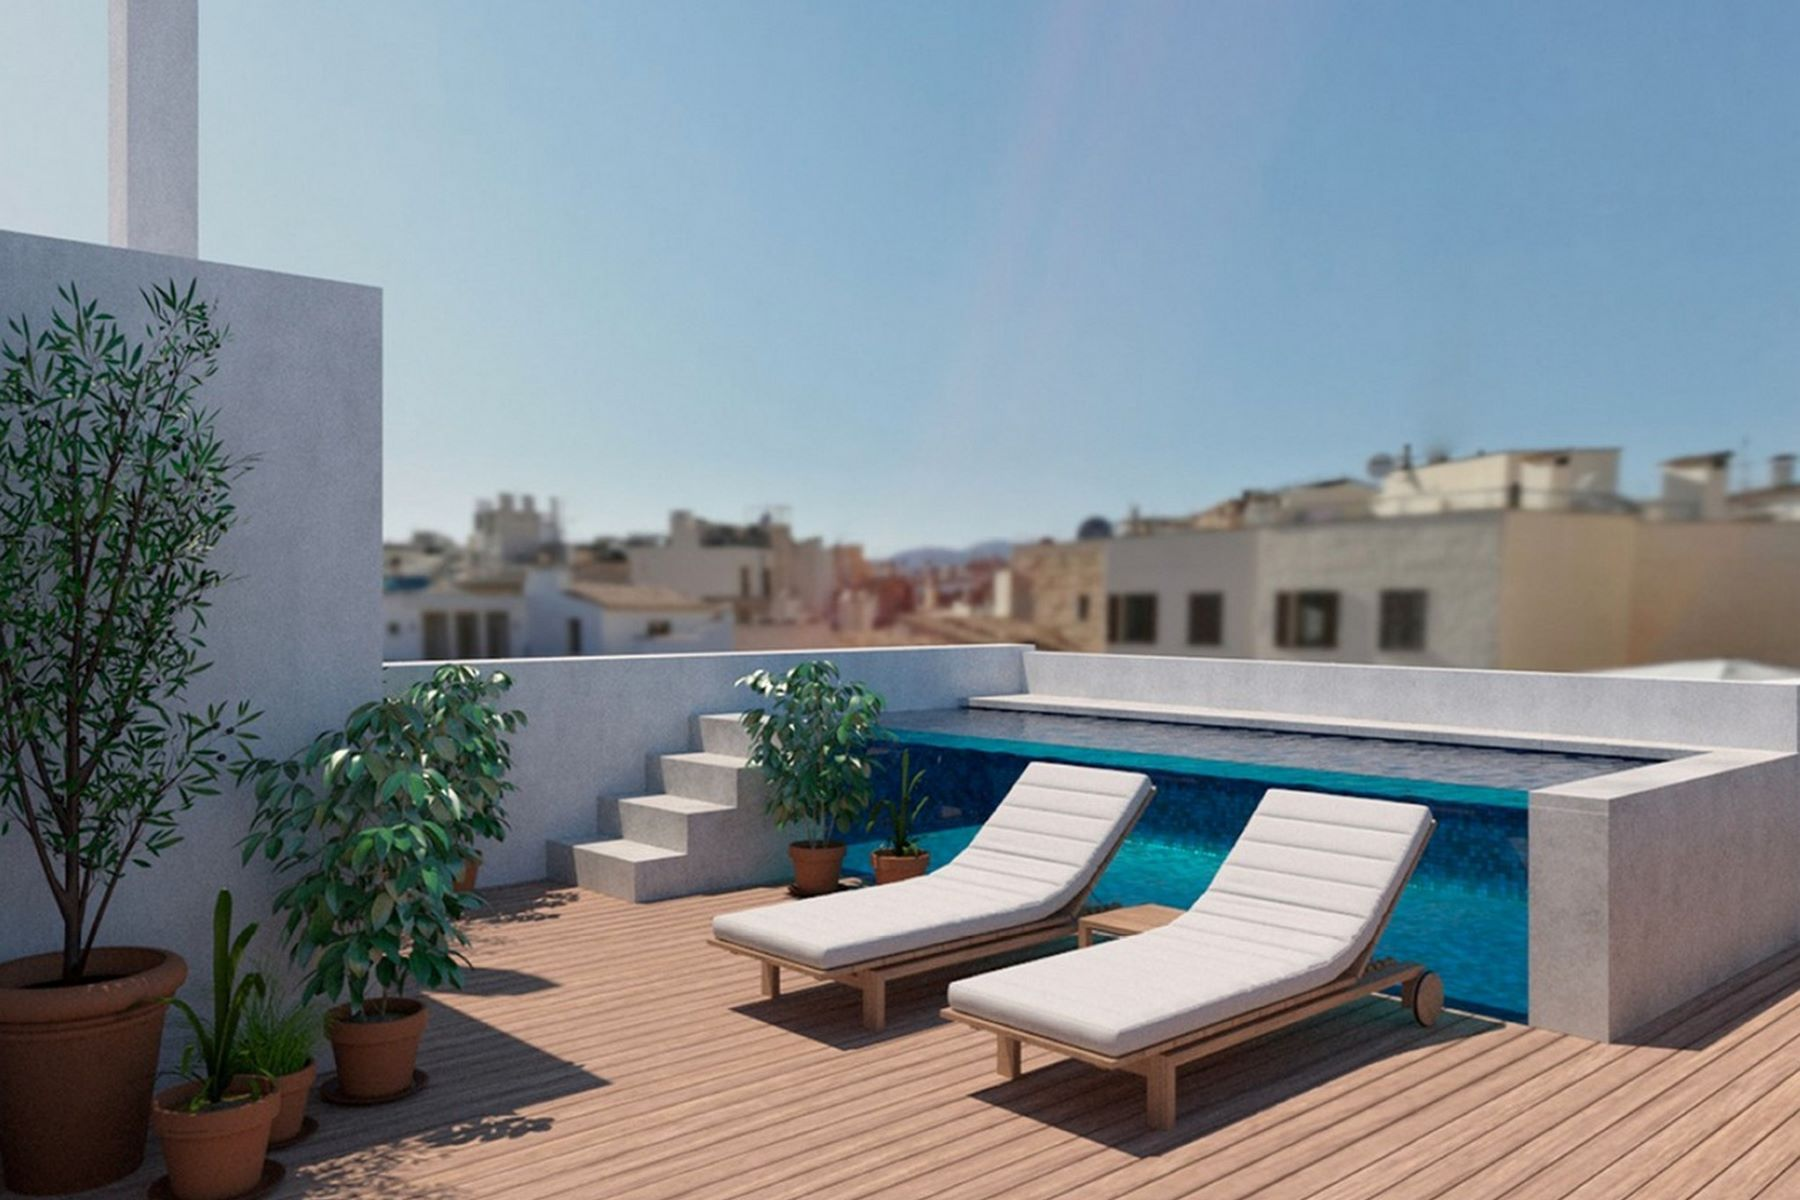 Single Family Home for Sale at Single family home with swimming pool Palma De Mallorca, Balearic Islands Spain